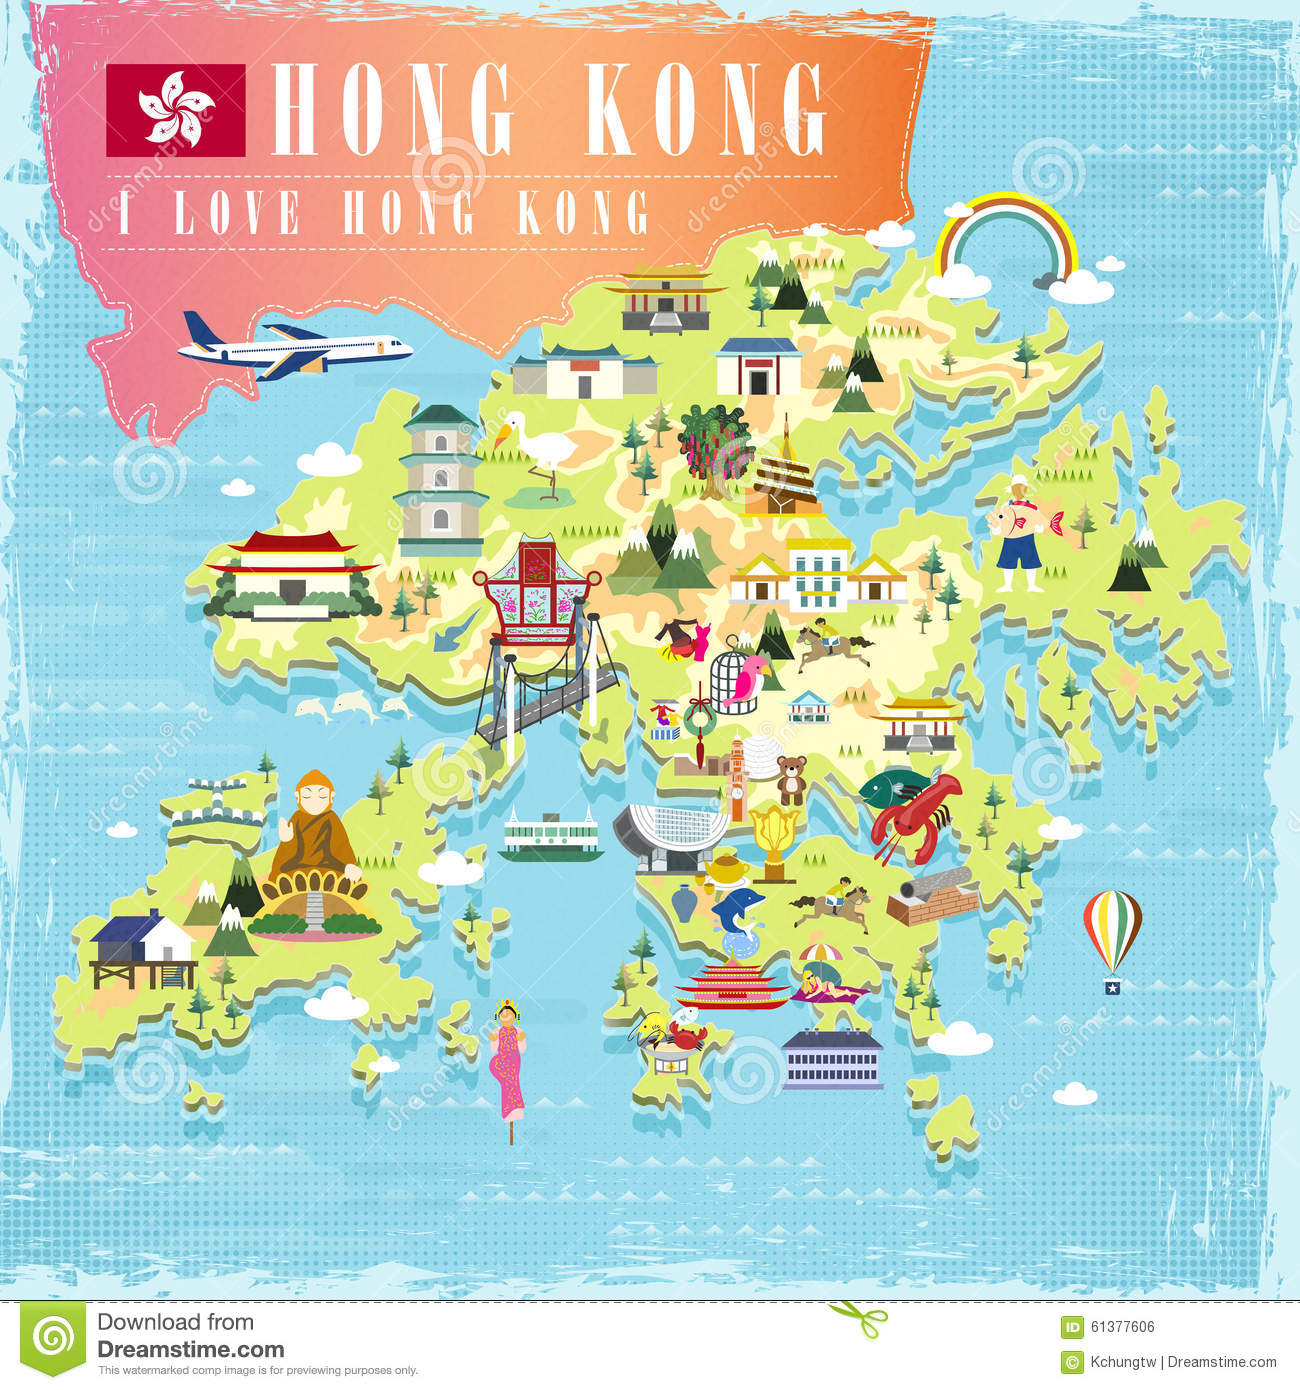 Hong Kong Travel Map Vector Illustration Cartoondealer Com 61377606